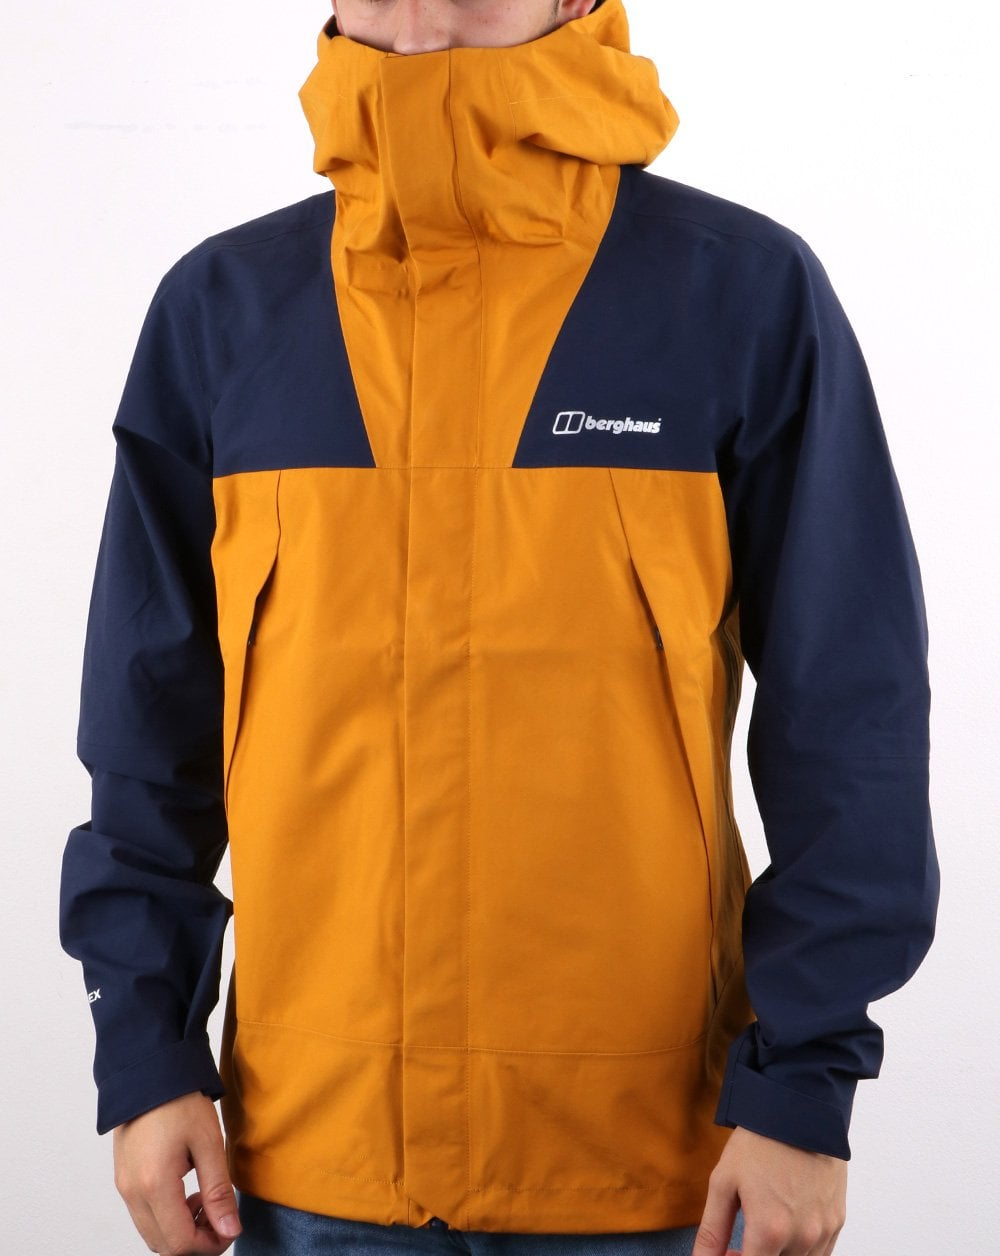 Berghaus Mountain jacket